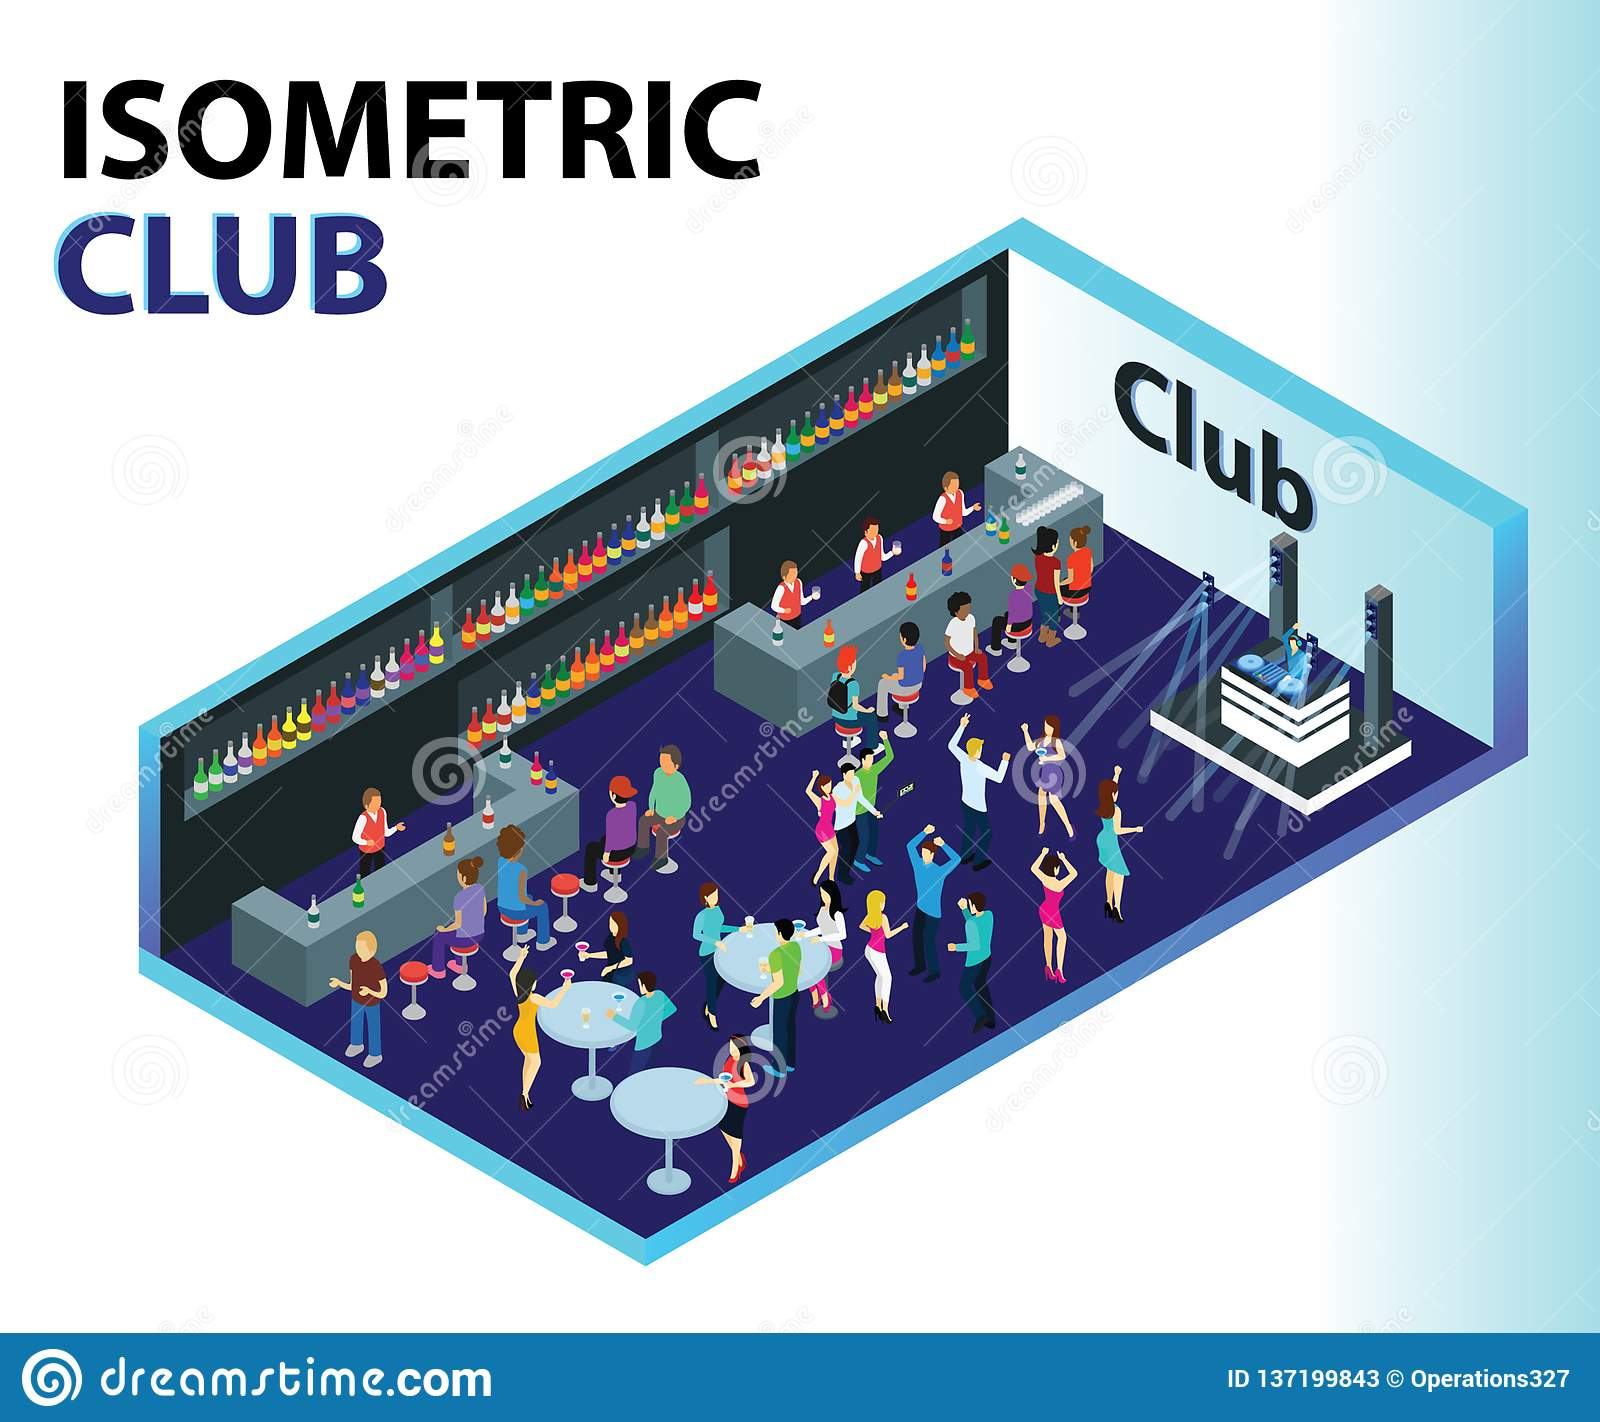 Club Isometric Artwork Concept where people are partying.